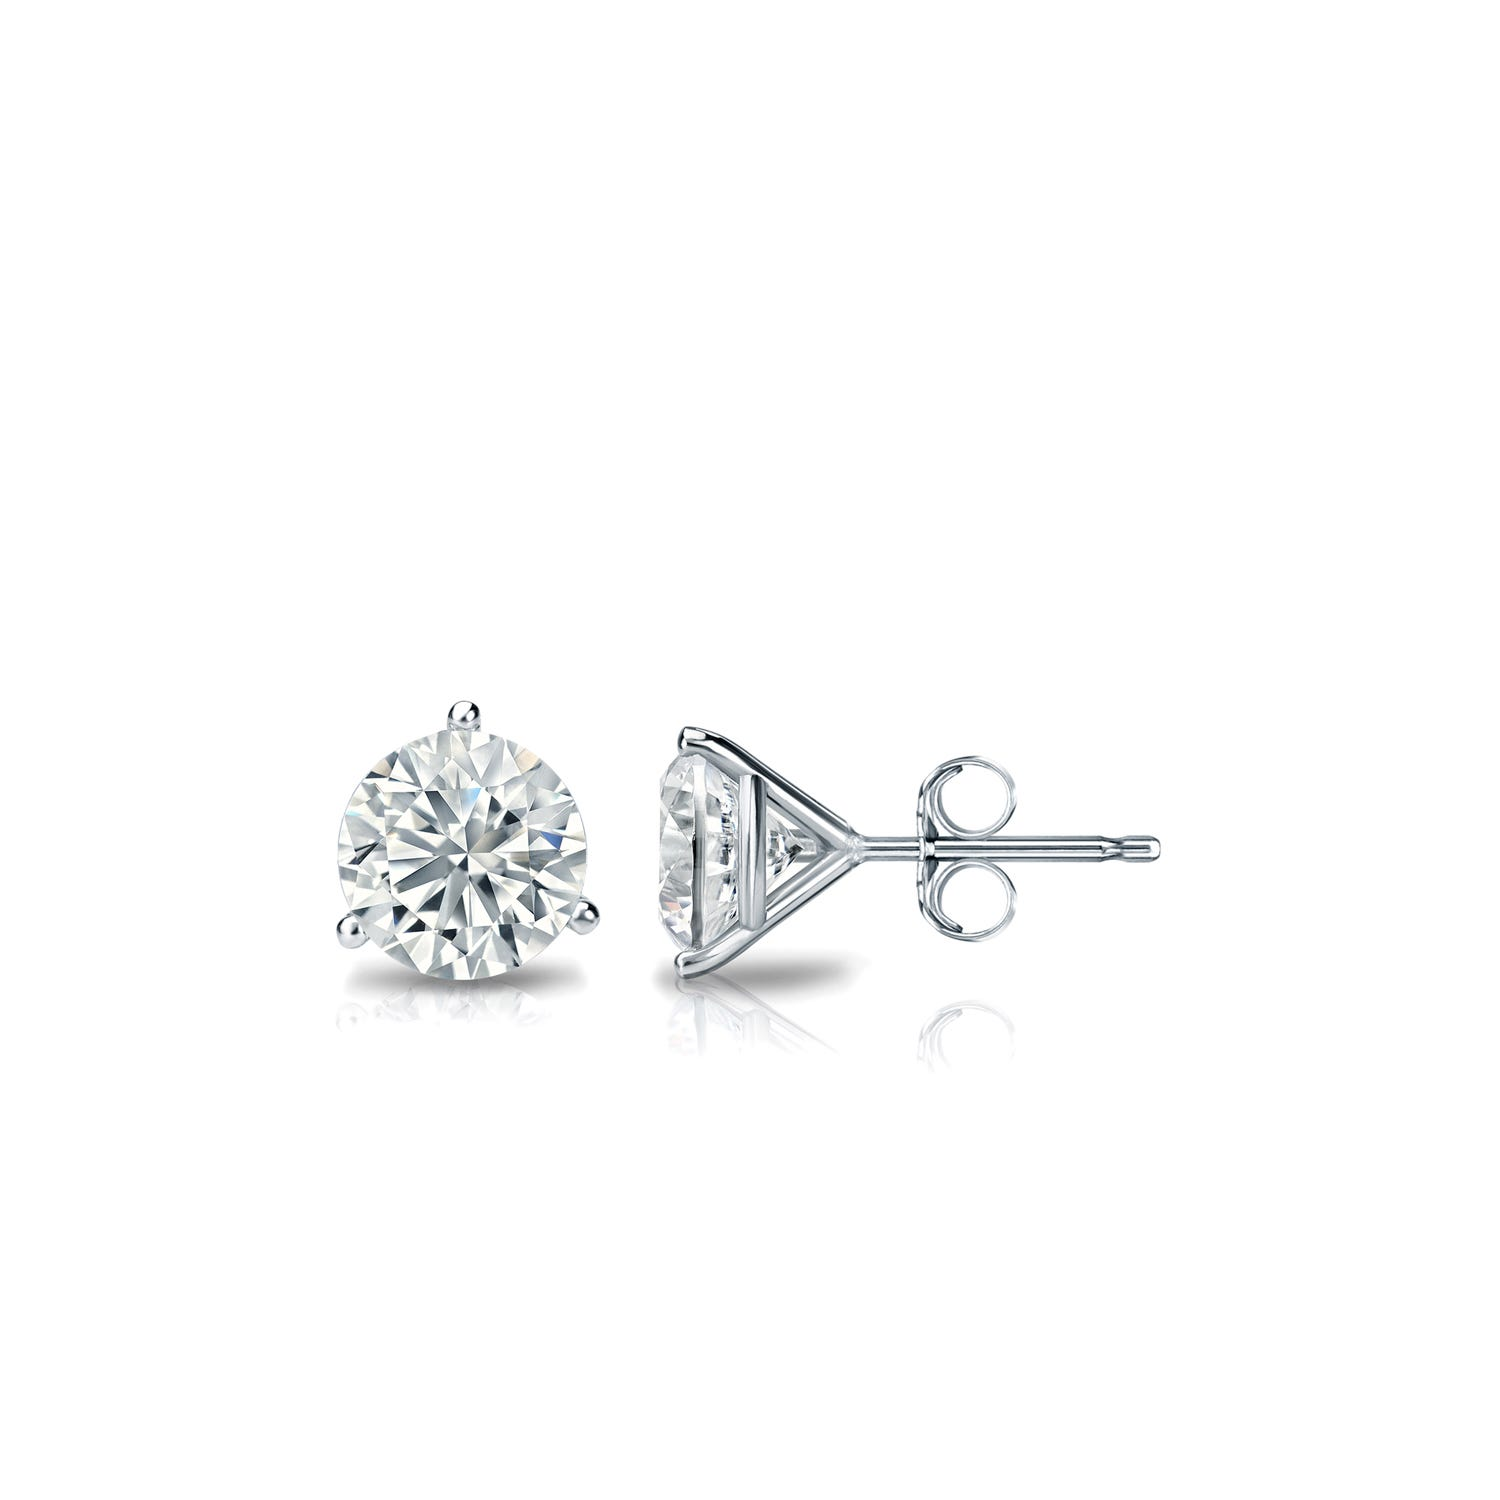 3/8 CTTW Round Diamond Solitaire Stud Earrings IJ I1 in Platinum 3-Prong Setting